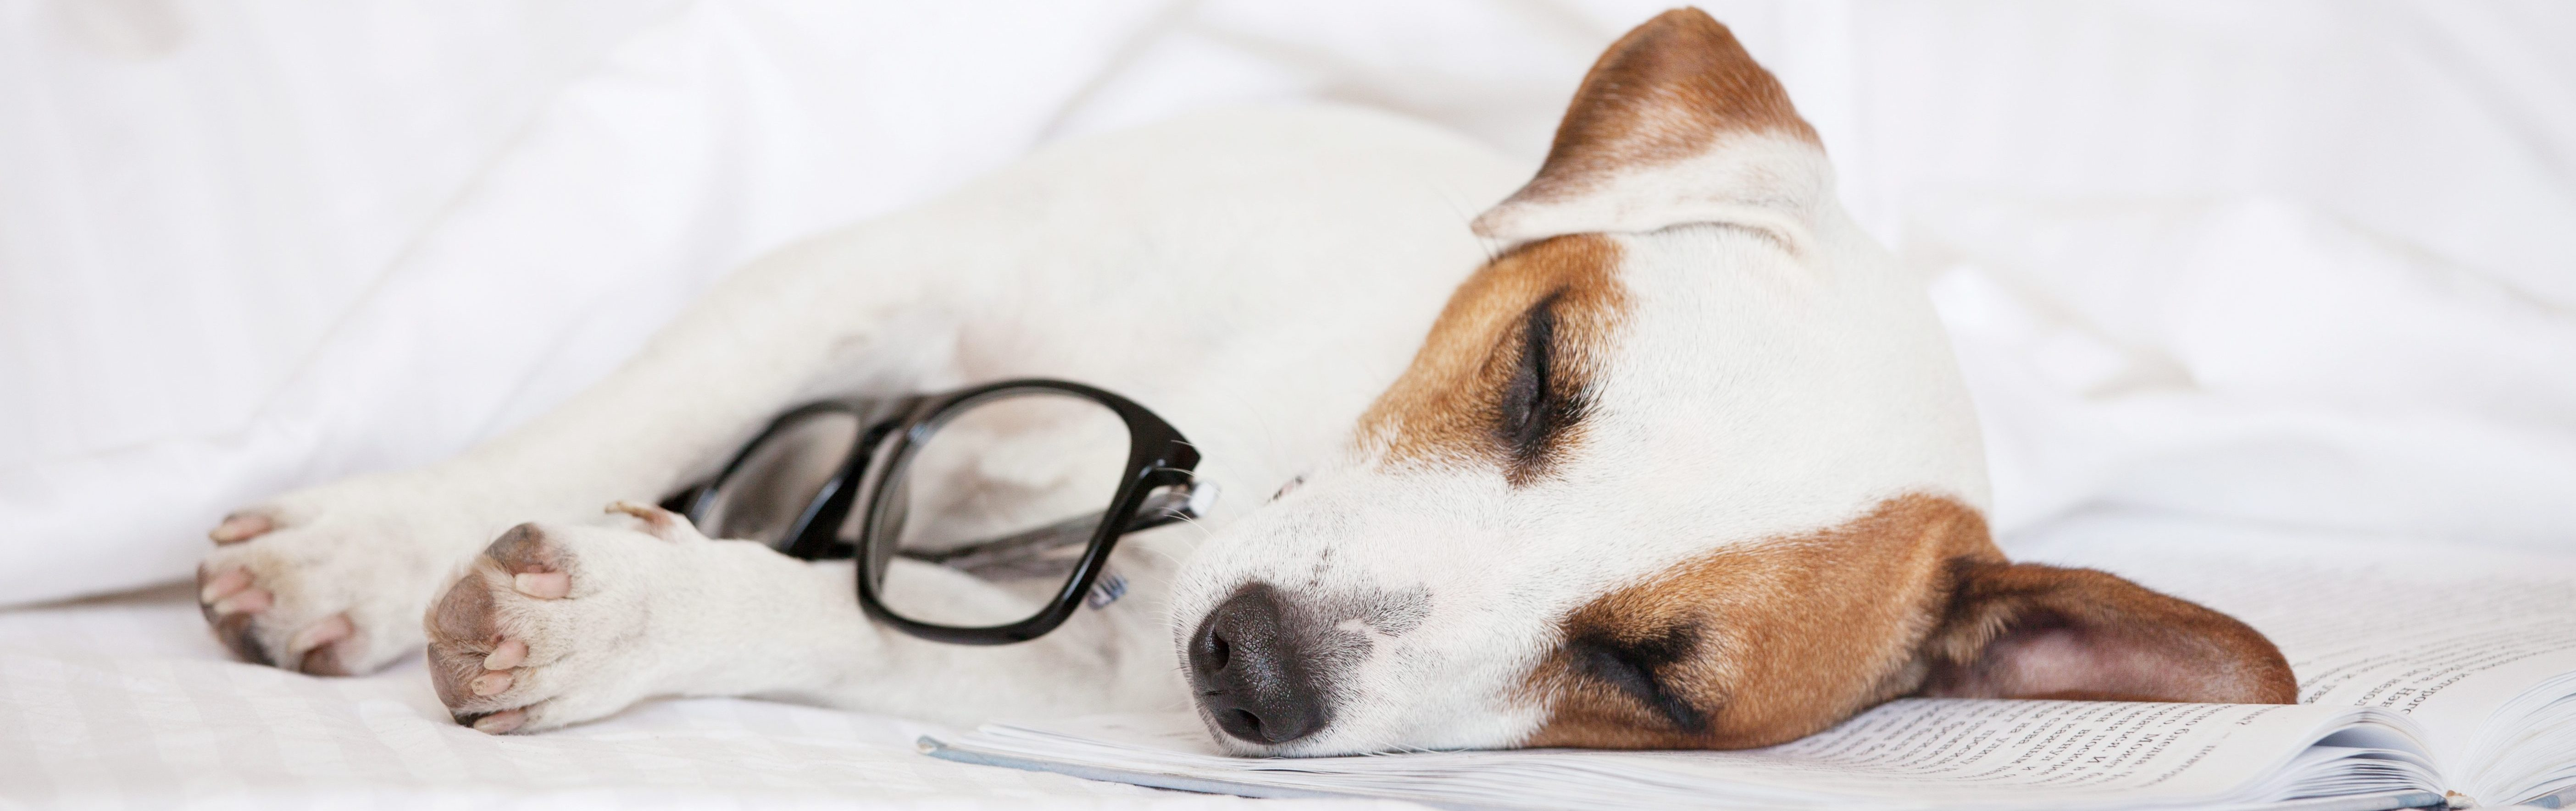 Should You Sleep With Your Pet? Health Risks and Benefits | Tuck Sleep